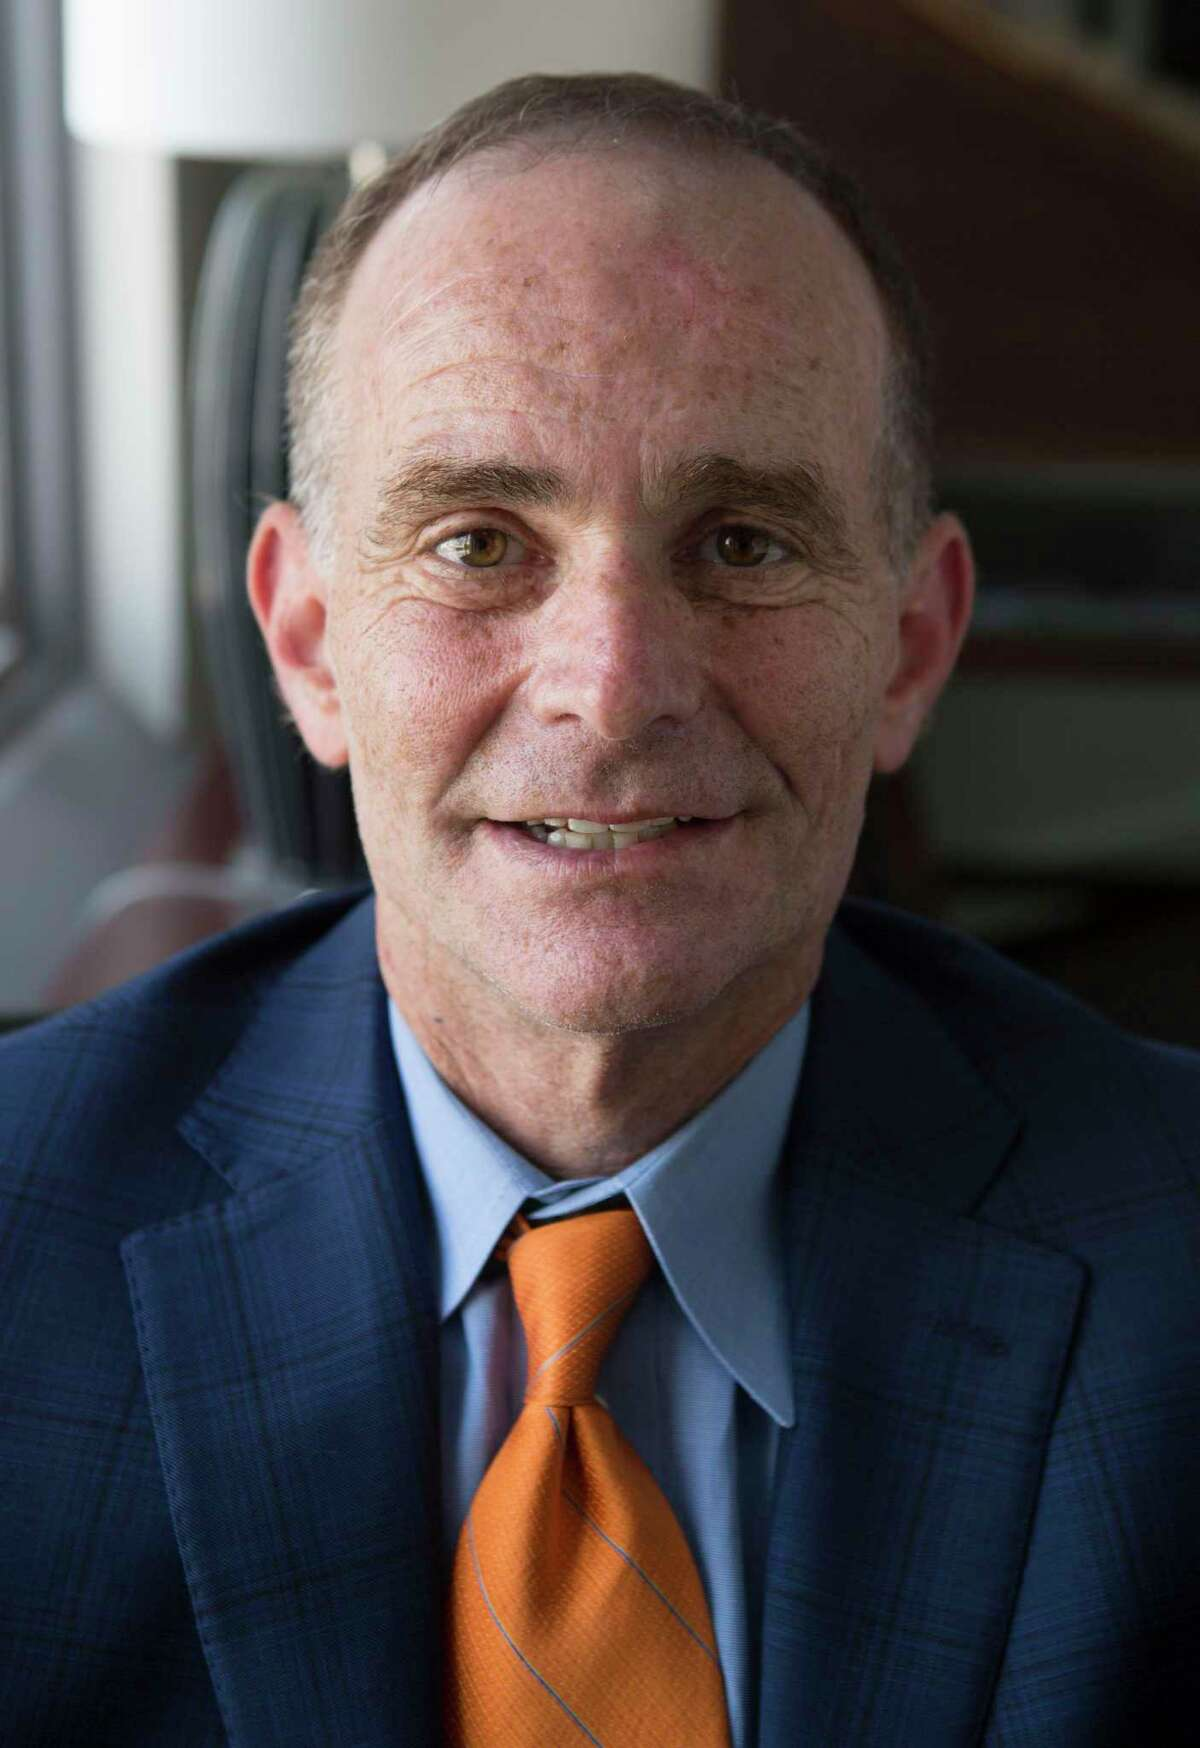 Michael Sacks, a senior vice president for Hearst newspapers, has been named publisher of the San Antonio Express-News.